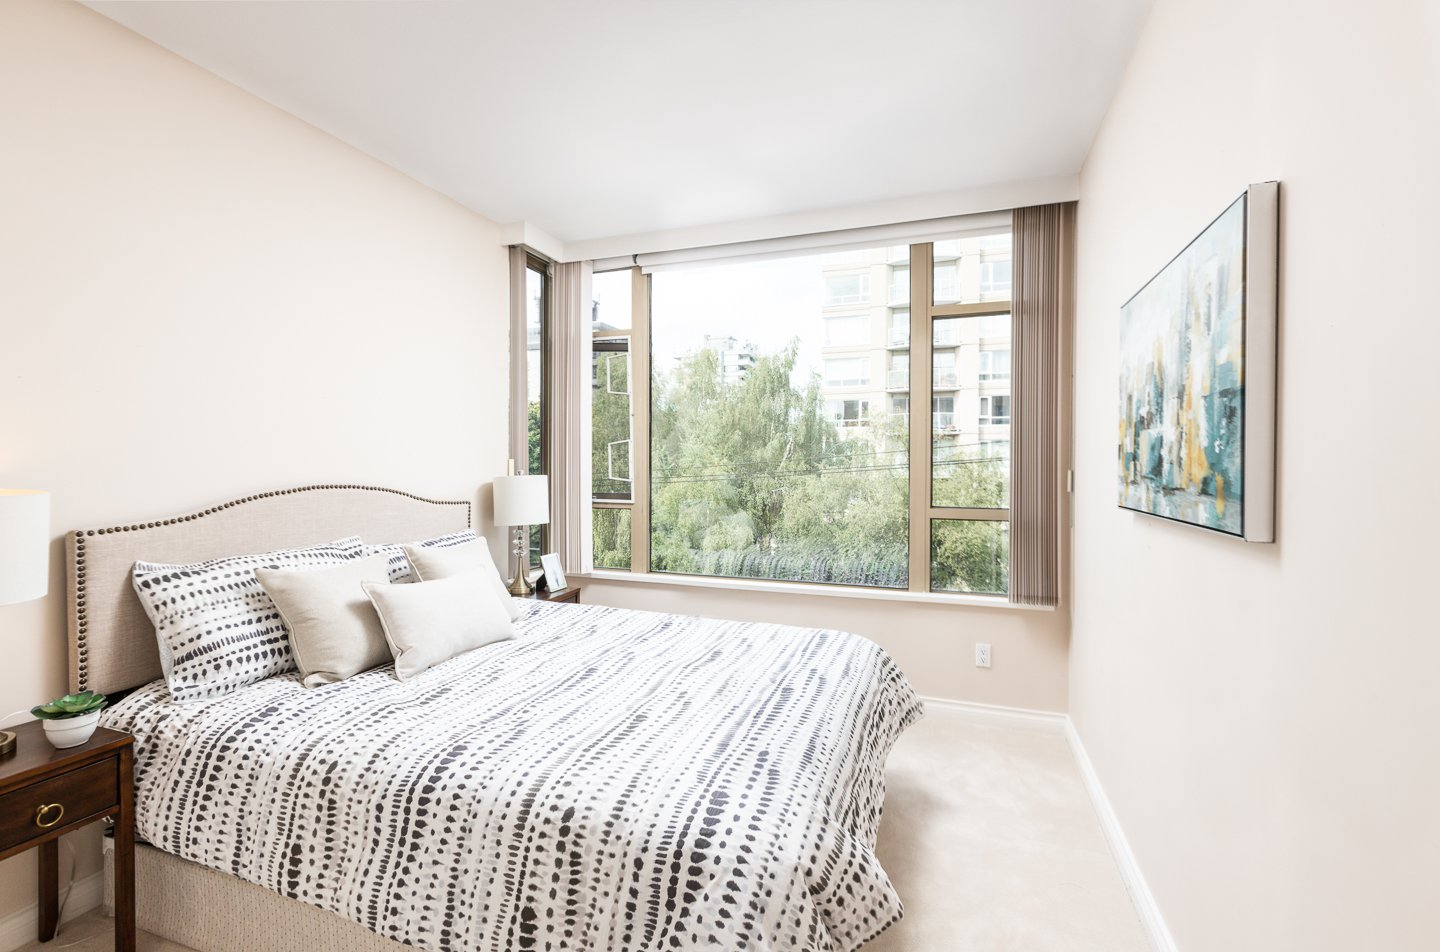 Photo 15: Photos: 401-2580 TOLMIE ST in VANCOUVER: Point Grey Condo for sale (Vancouver West)  : MLS®# R2397003